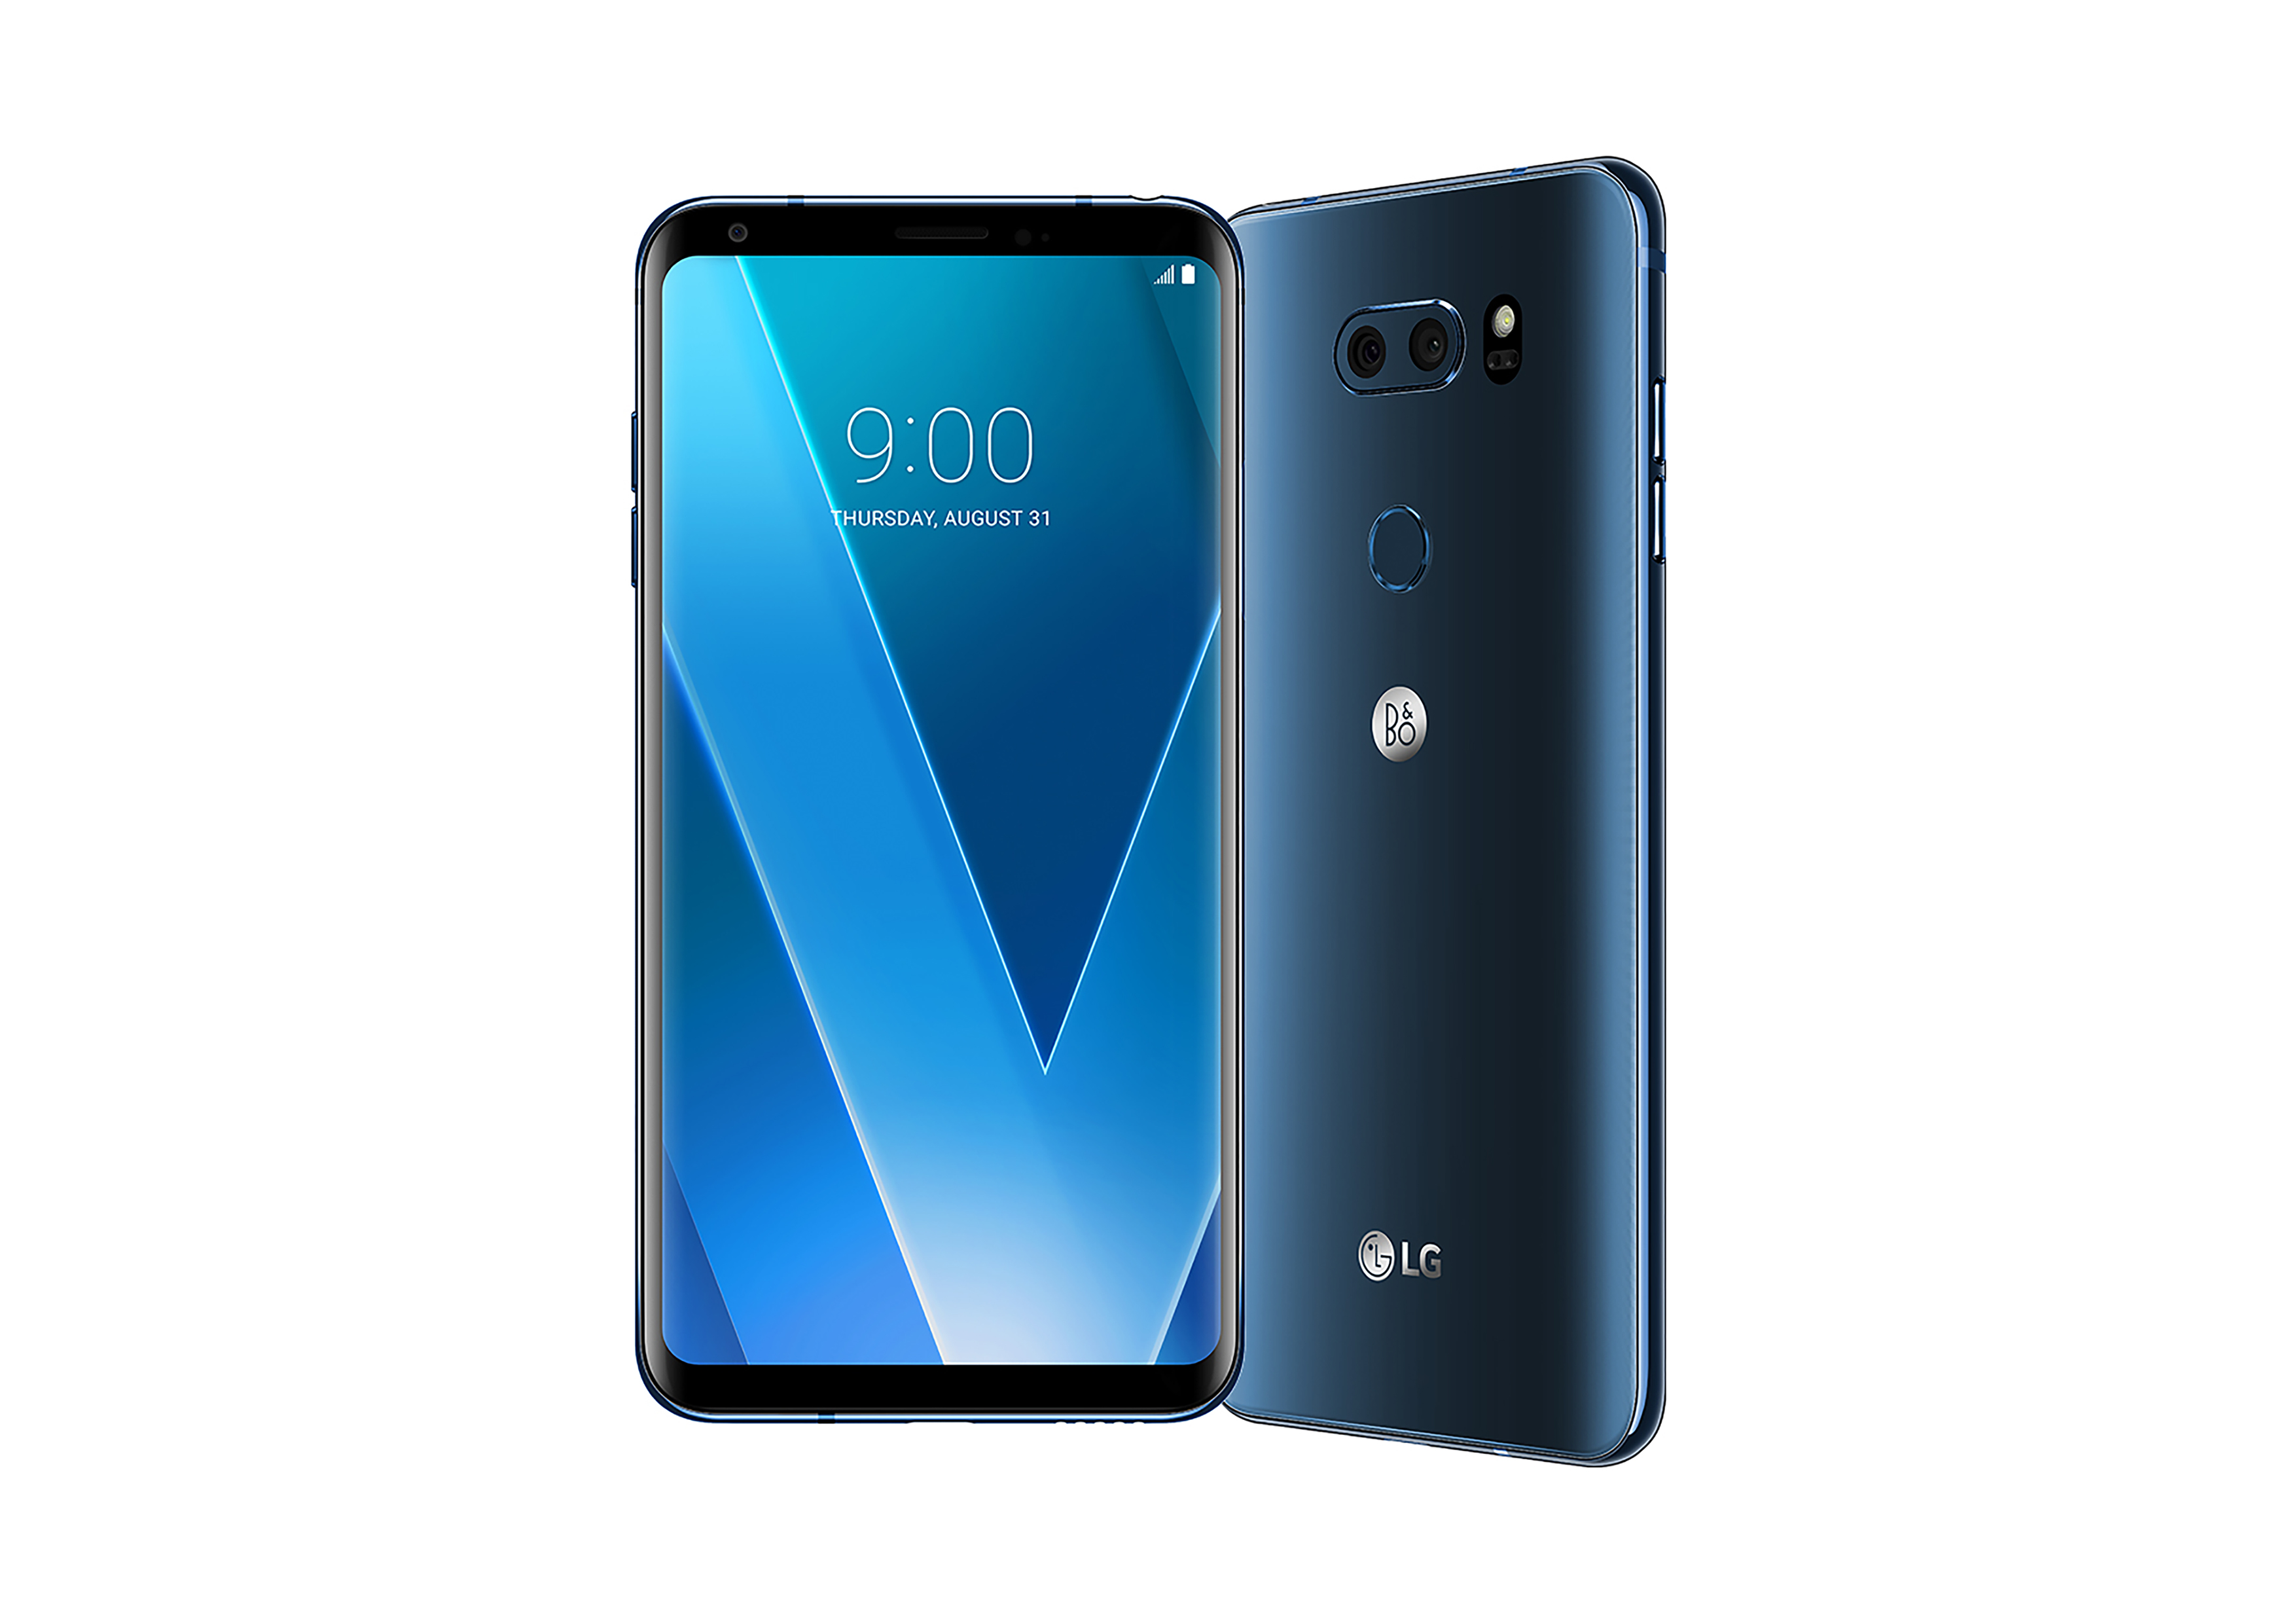 LG V30 blue official